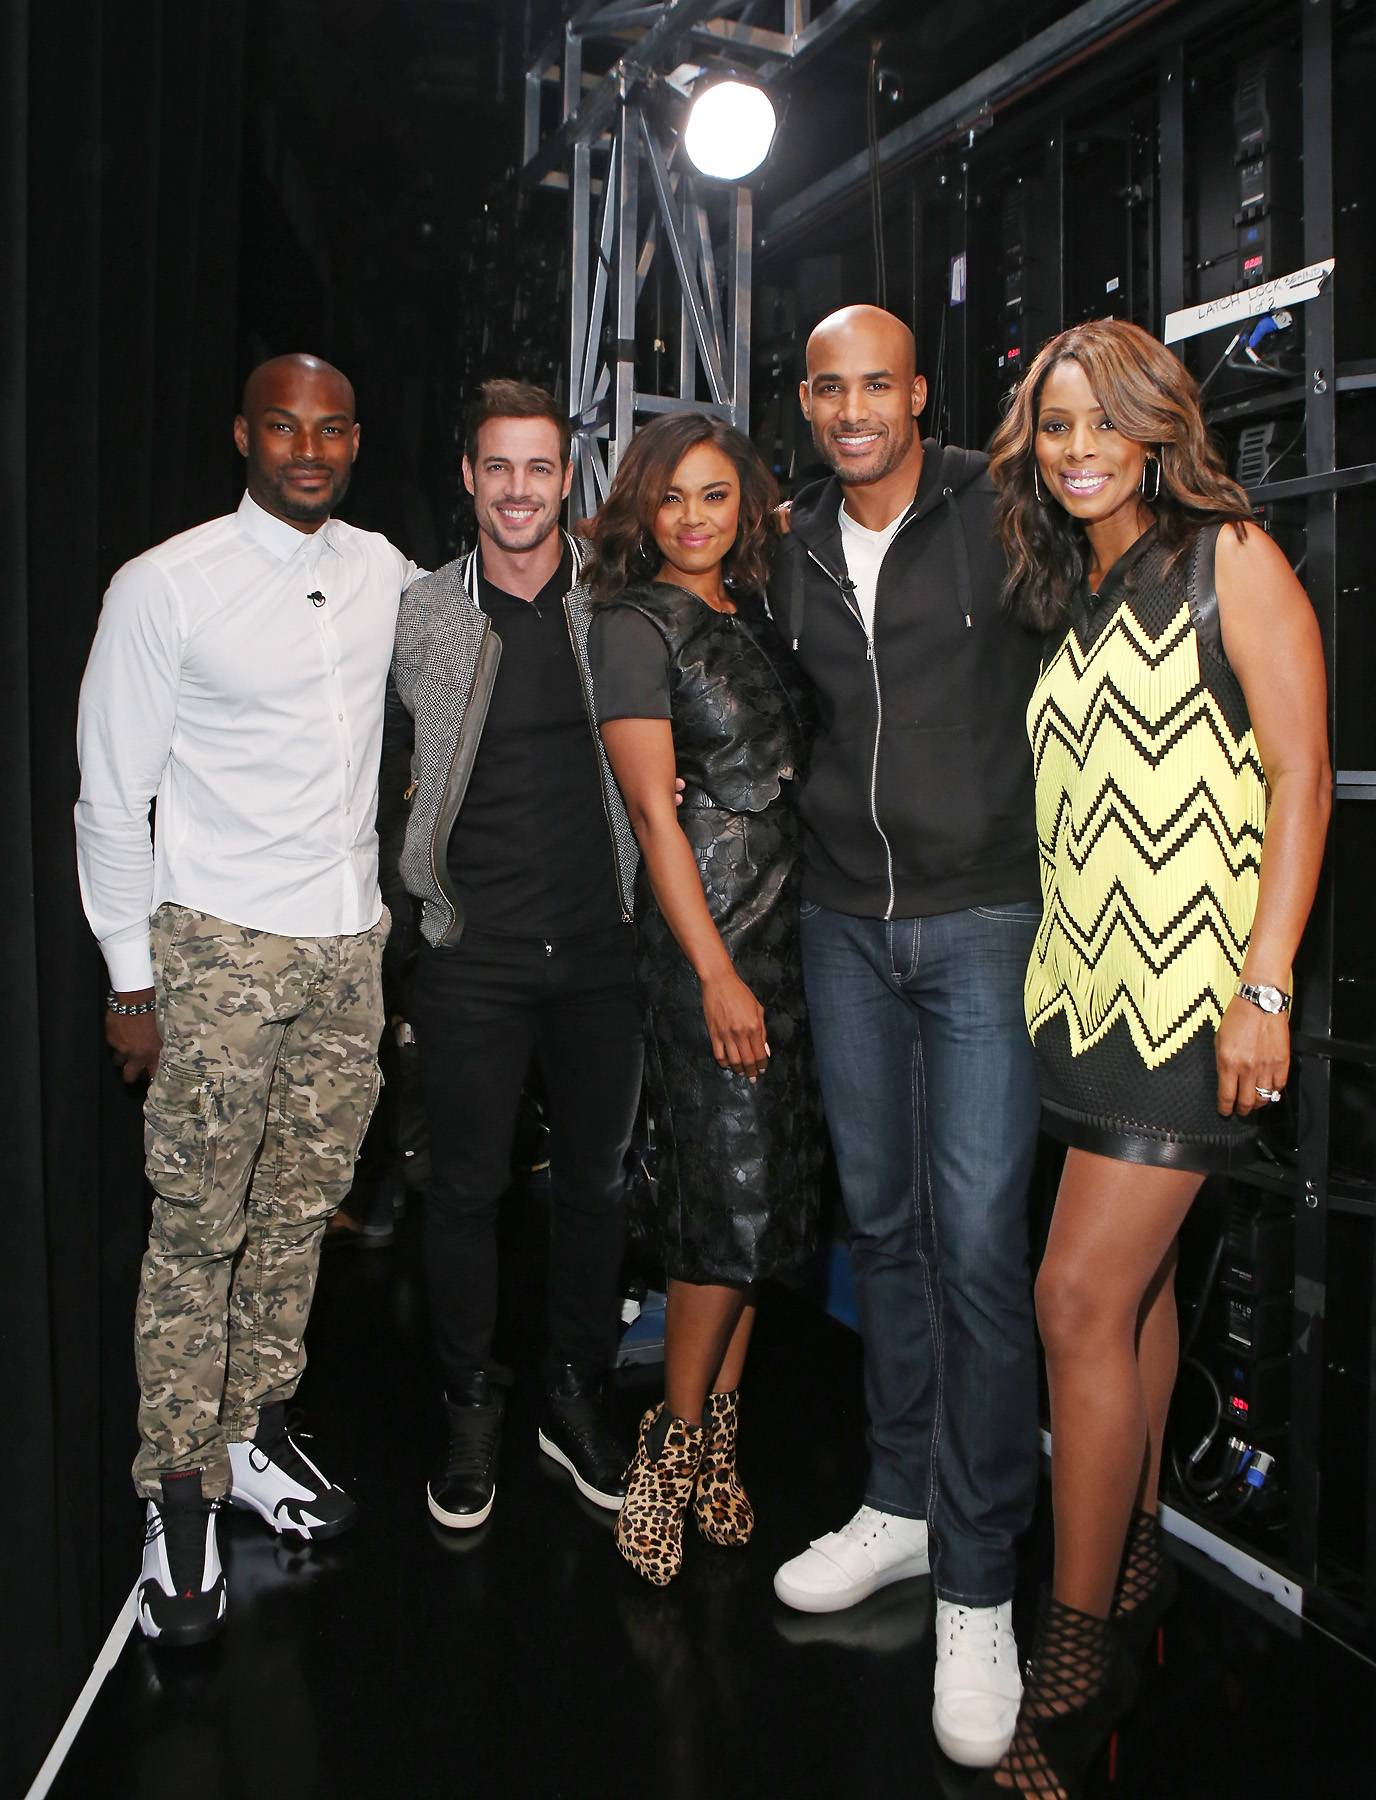 Such a Sexy Cast - (Photo: Bennett Raglin/BET/Getty Images for BET)